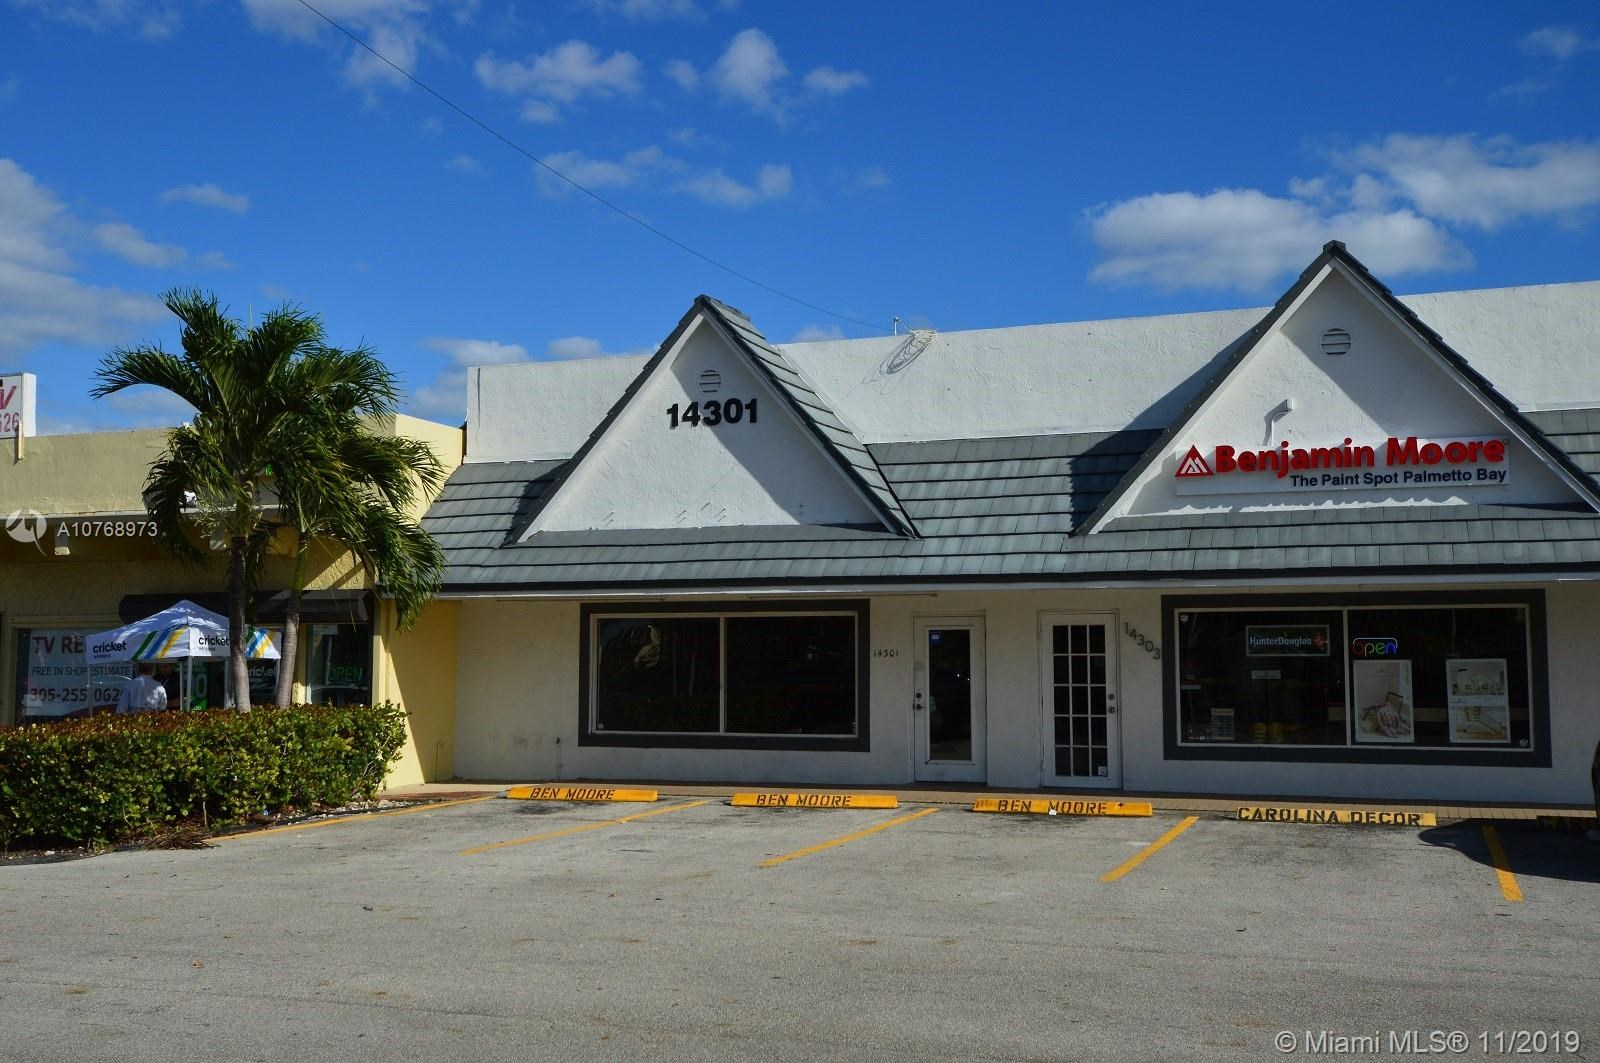 14301 S Dixie Hwy   14301, Palmetto Bay, FL 33176